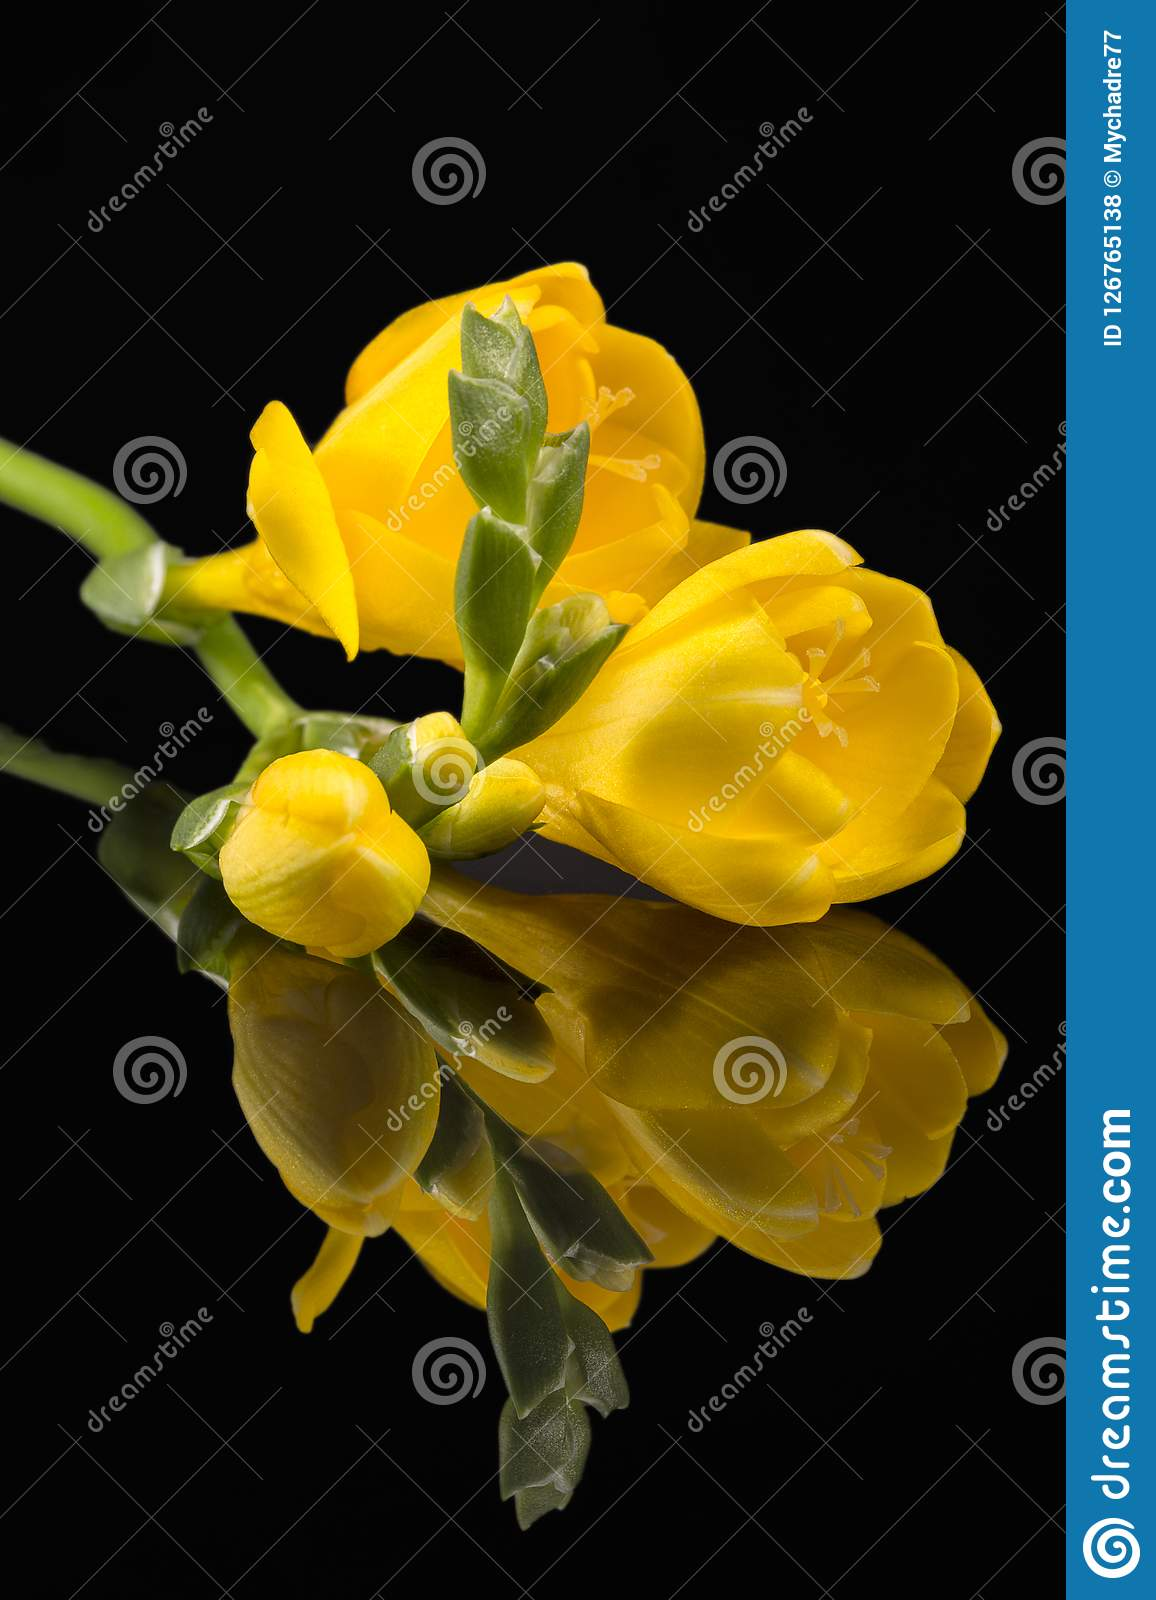 Flowers of beautiful yellow freesia isolated on black background. Mirror reflection Royalty Free Stock Photos